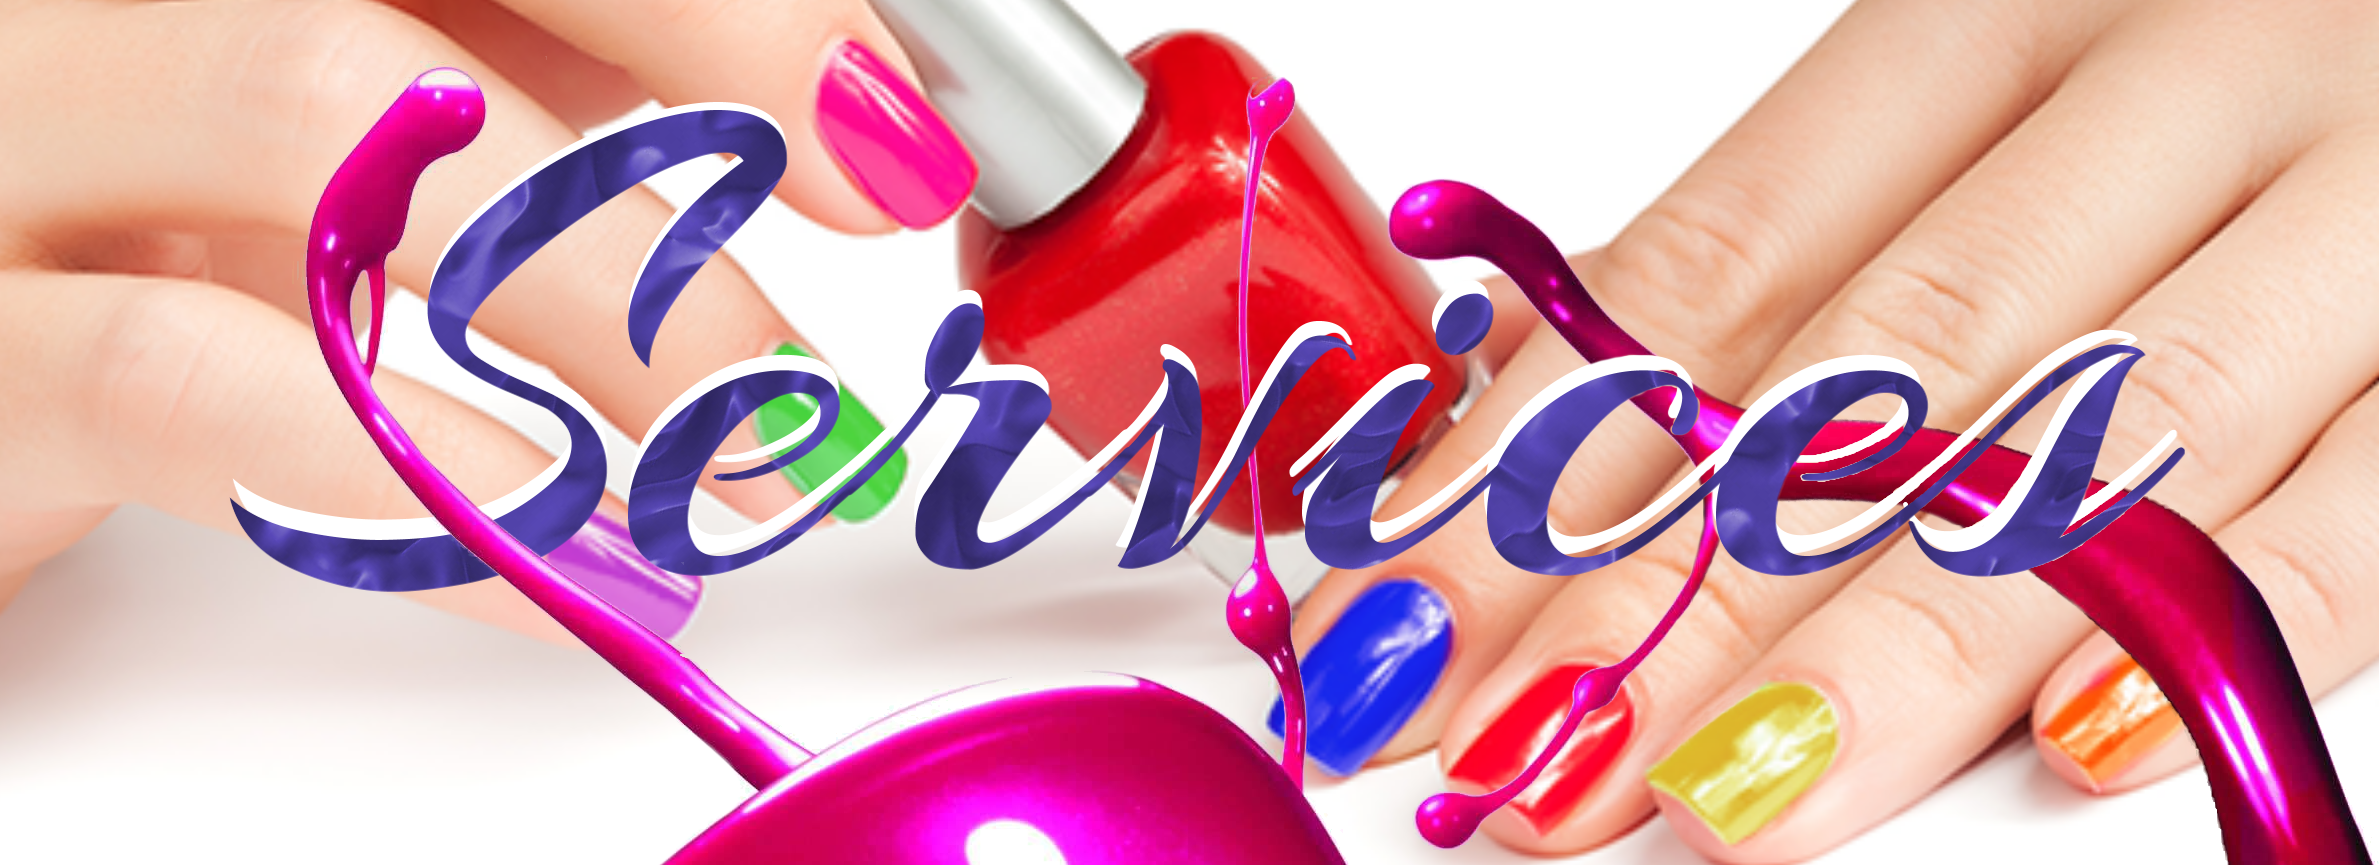 Welcome to T&L Nail Spa - www.T&LNailSpa.com - Services